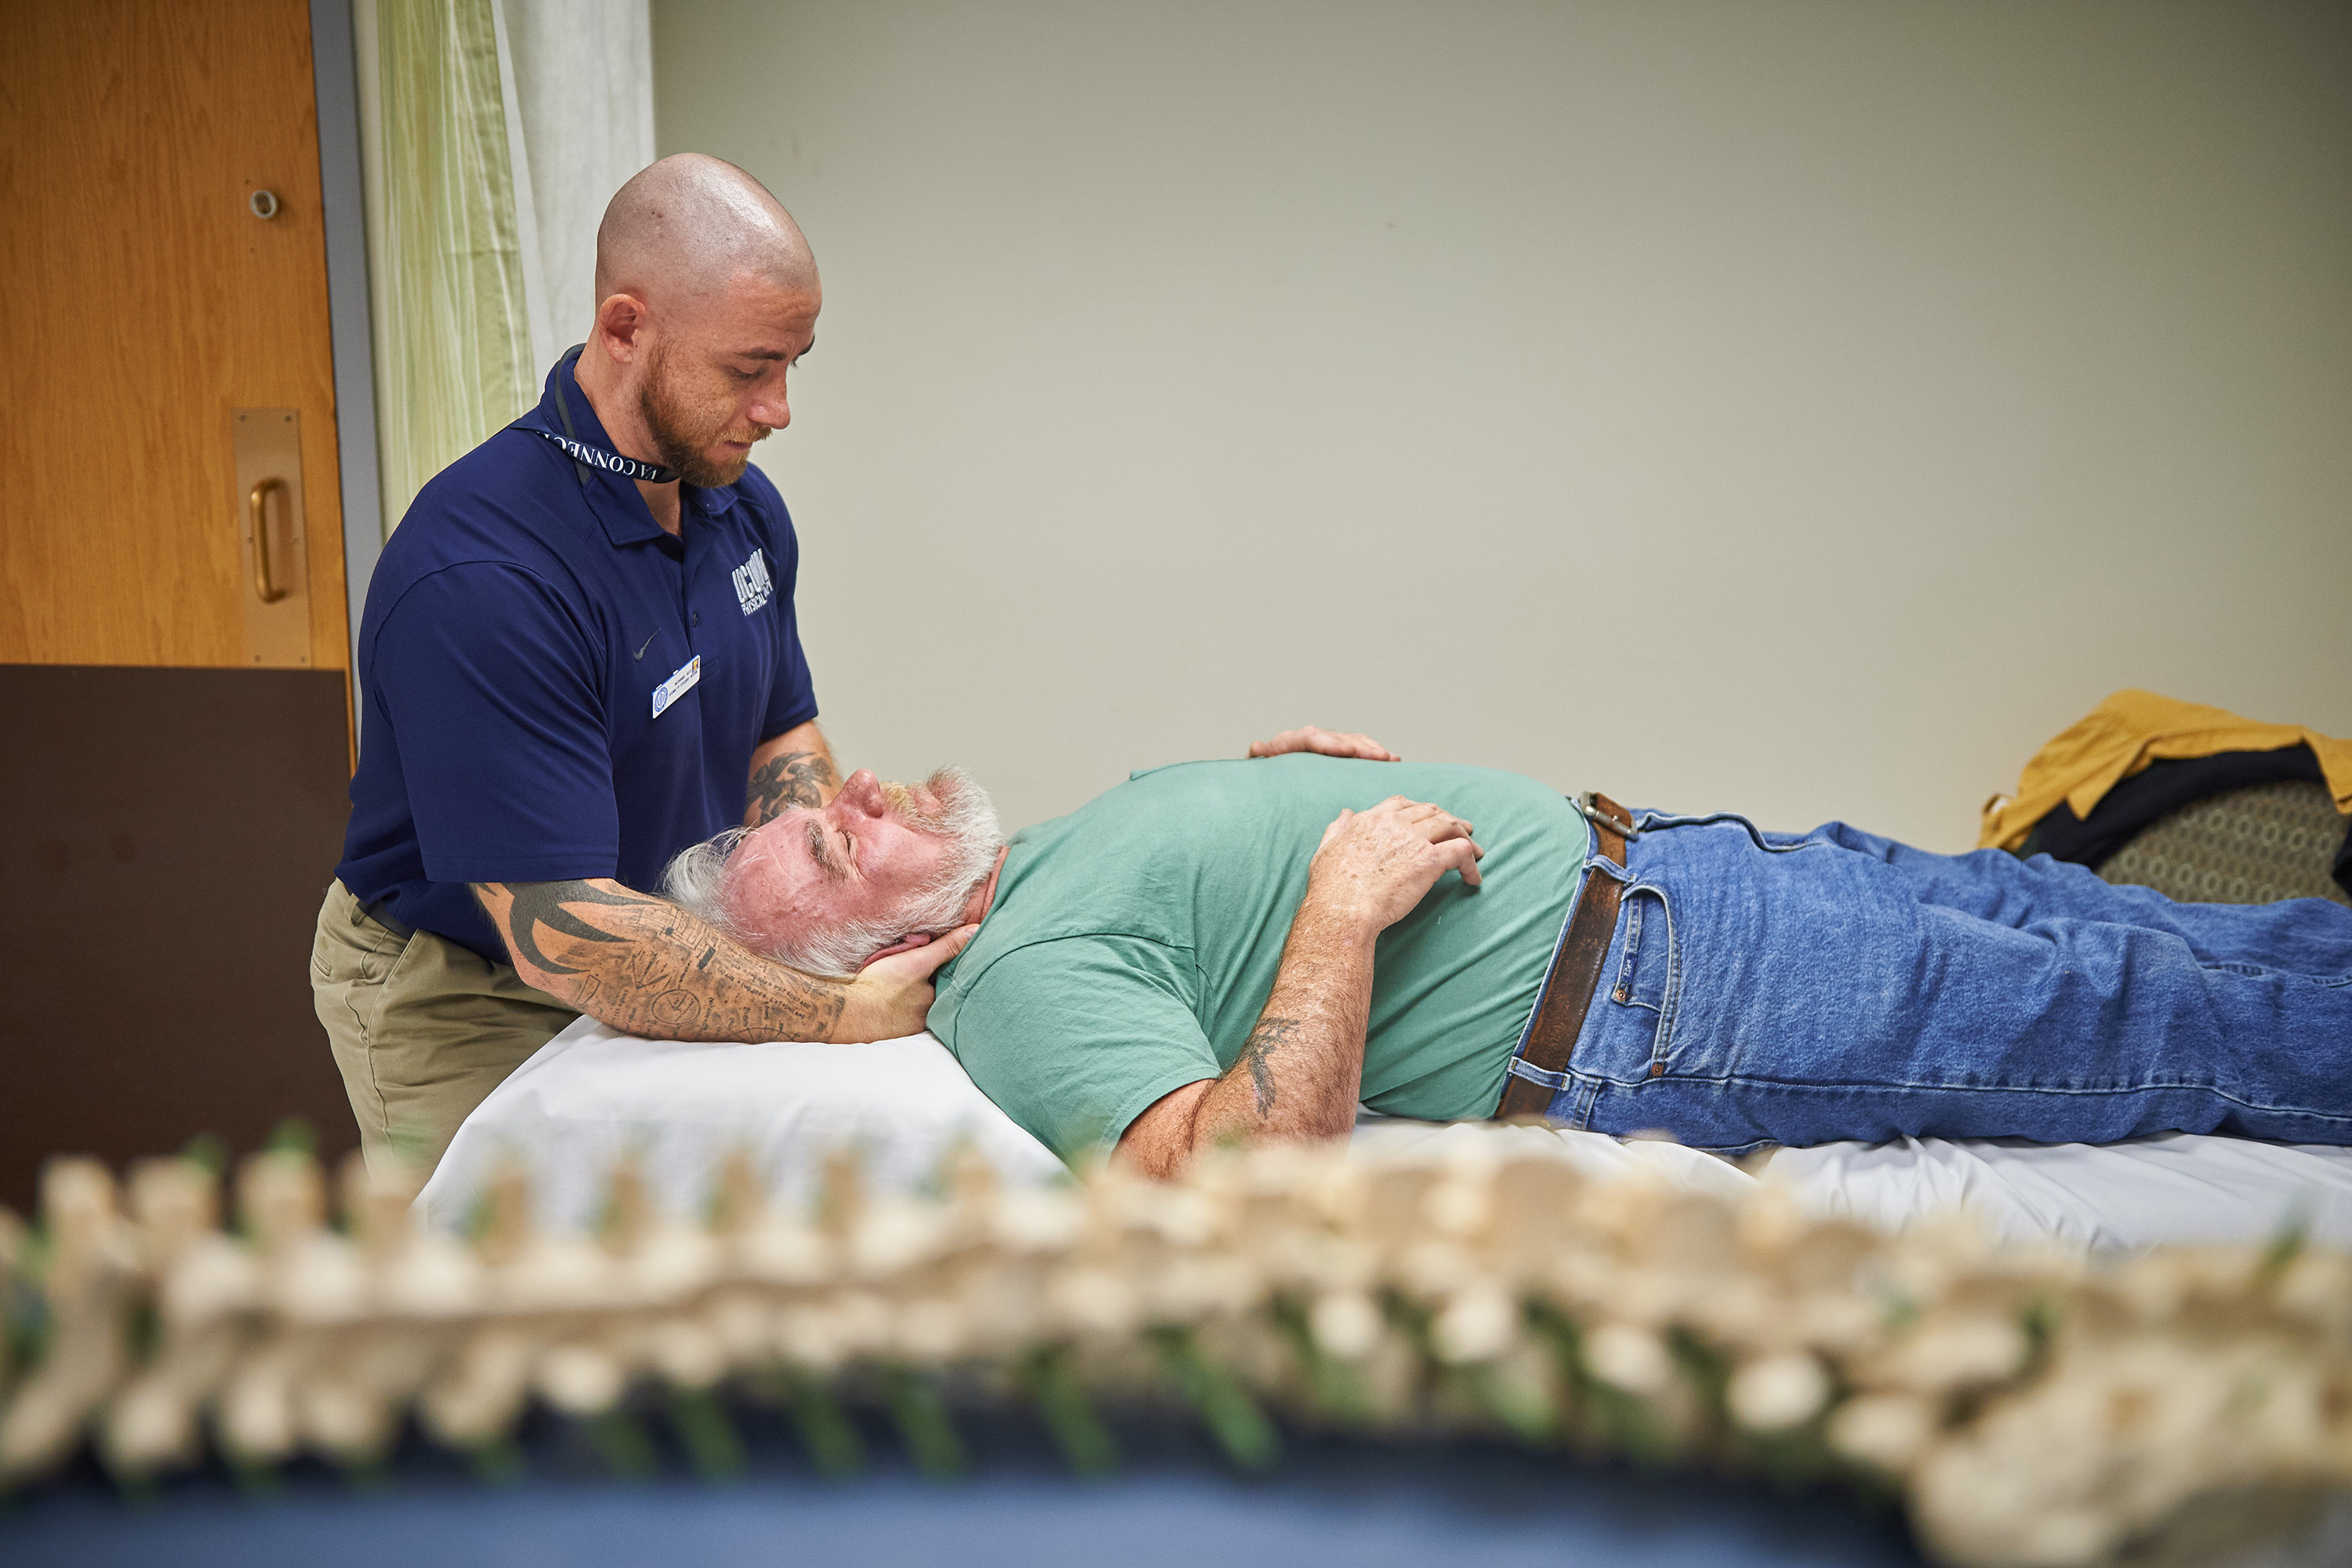 Nathaniel Hutt, a doctor of physical therapy student, works with a patient in the Outpatient Rehab Clinic at the VA Hospital in West Haven. (Peter Morenus/UConn Photo)